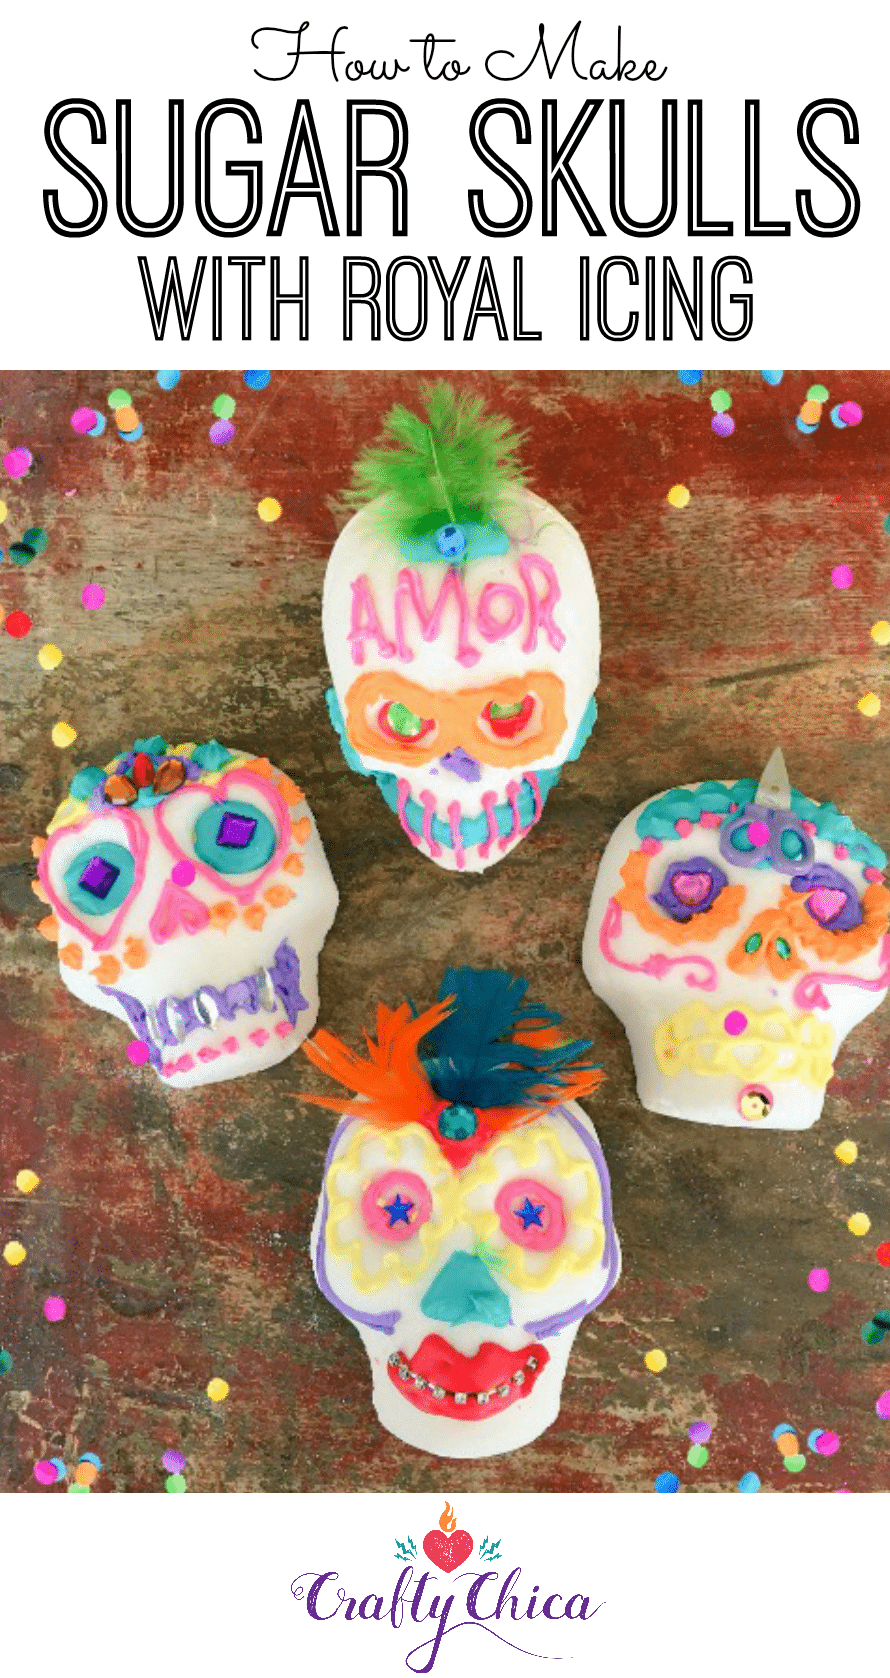 Decorated sugar skulls on a table with confetti.